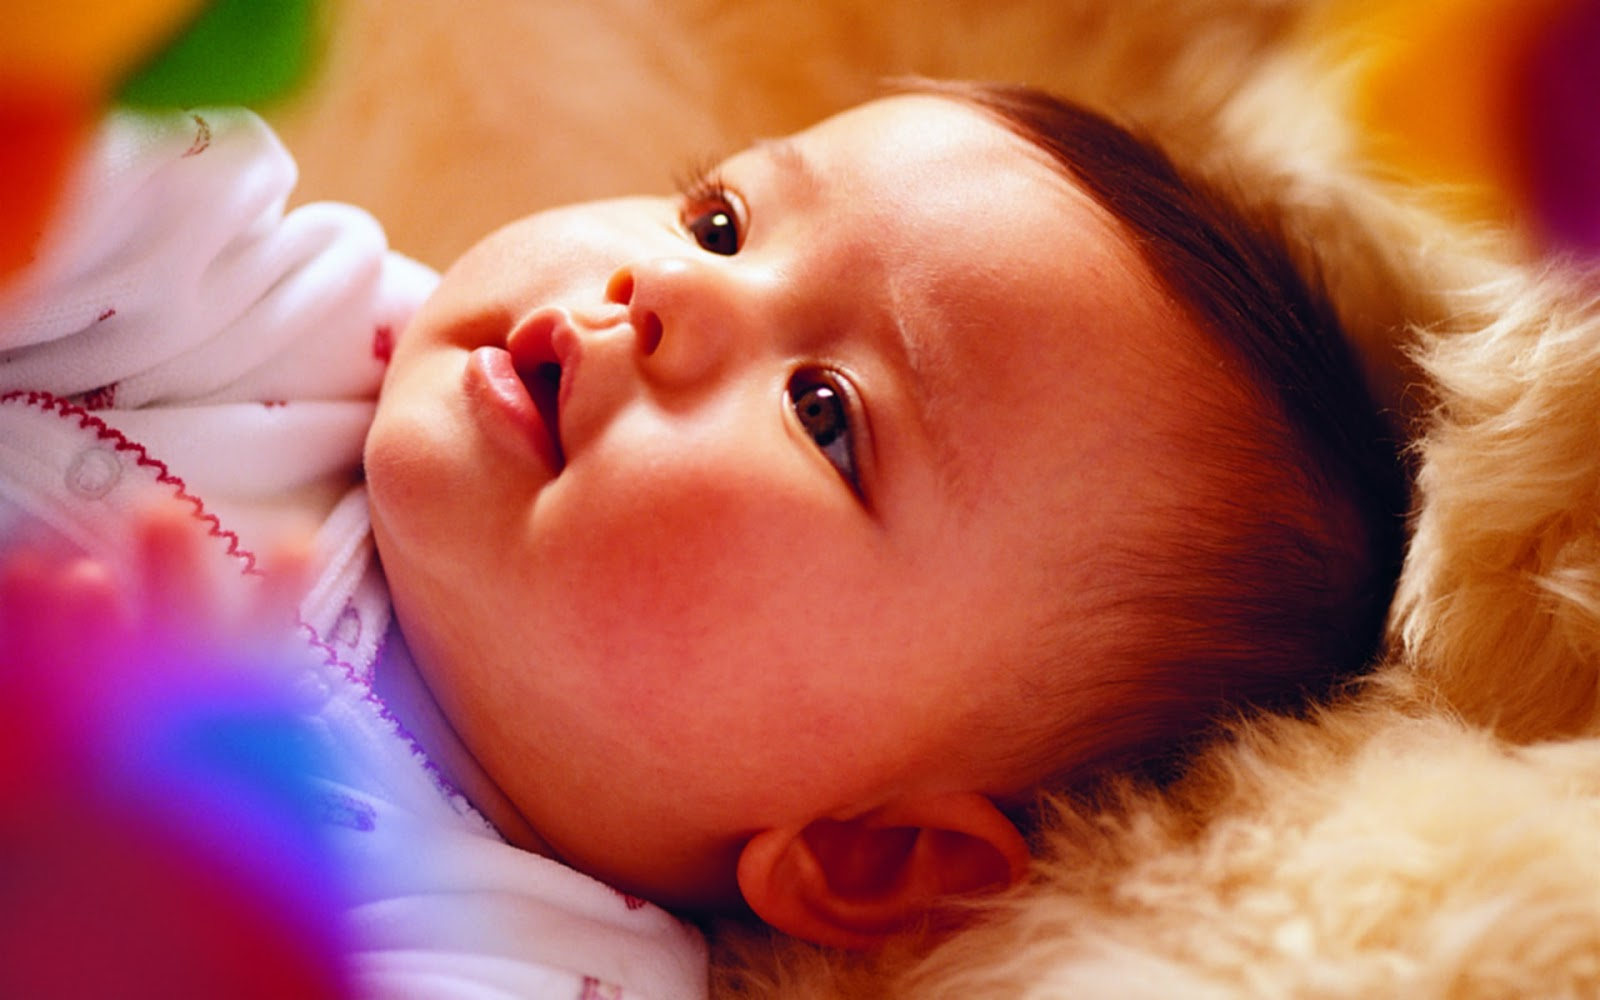 cute baby hd wallpapers, cute baby hd images, child hd wallpapers, cute baby hd postures, cute baby wild life hd images, original cute baby hd wallpapers, ...